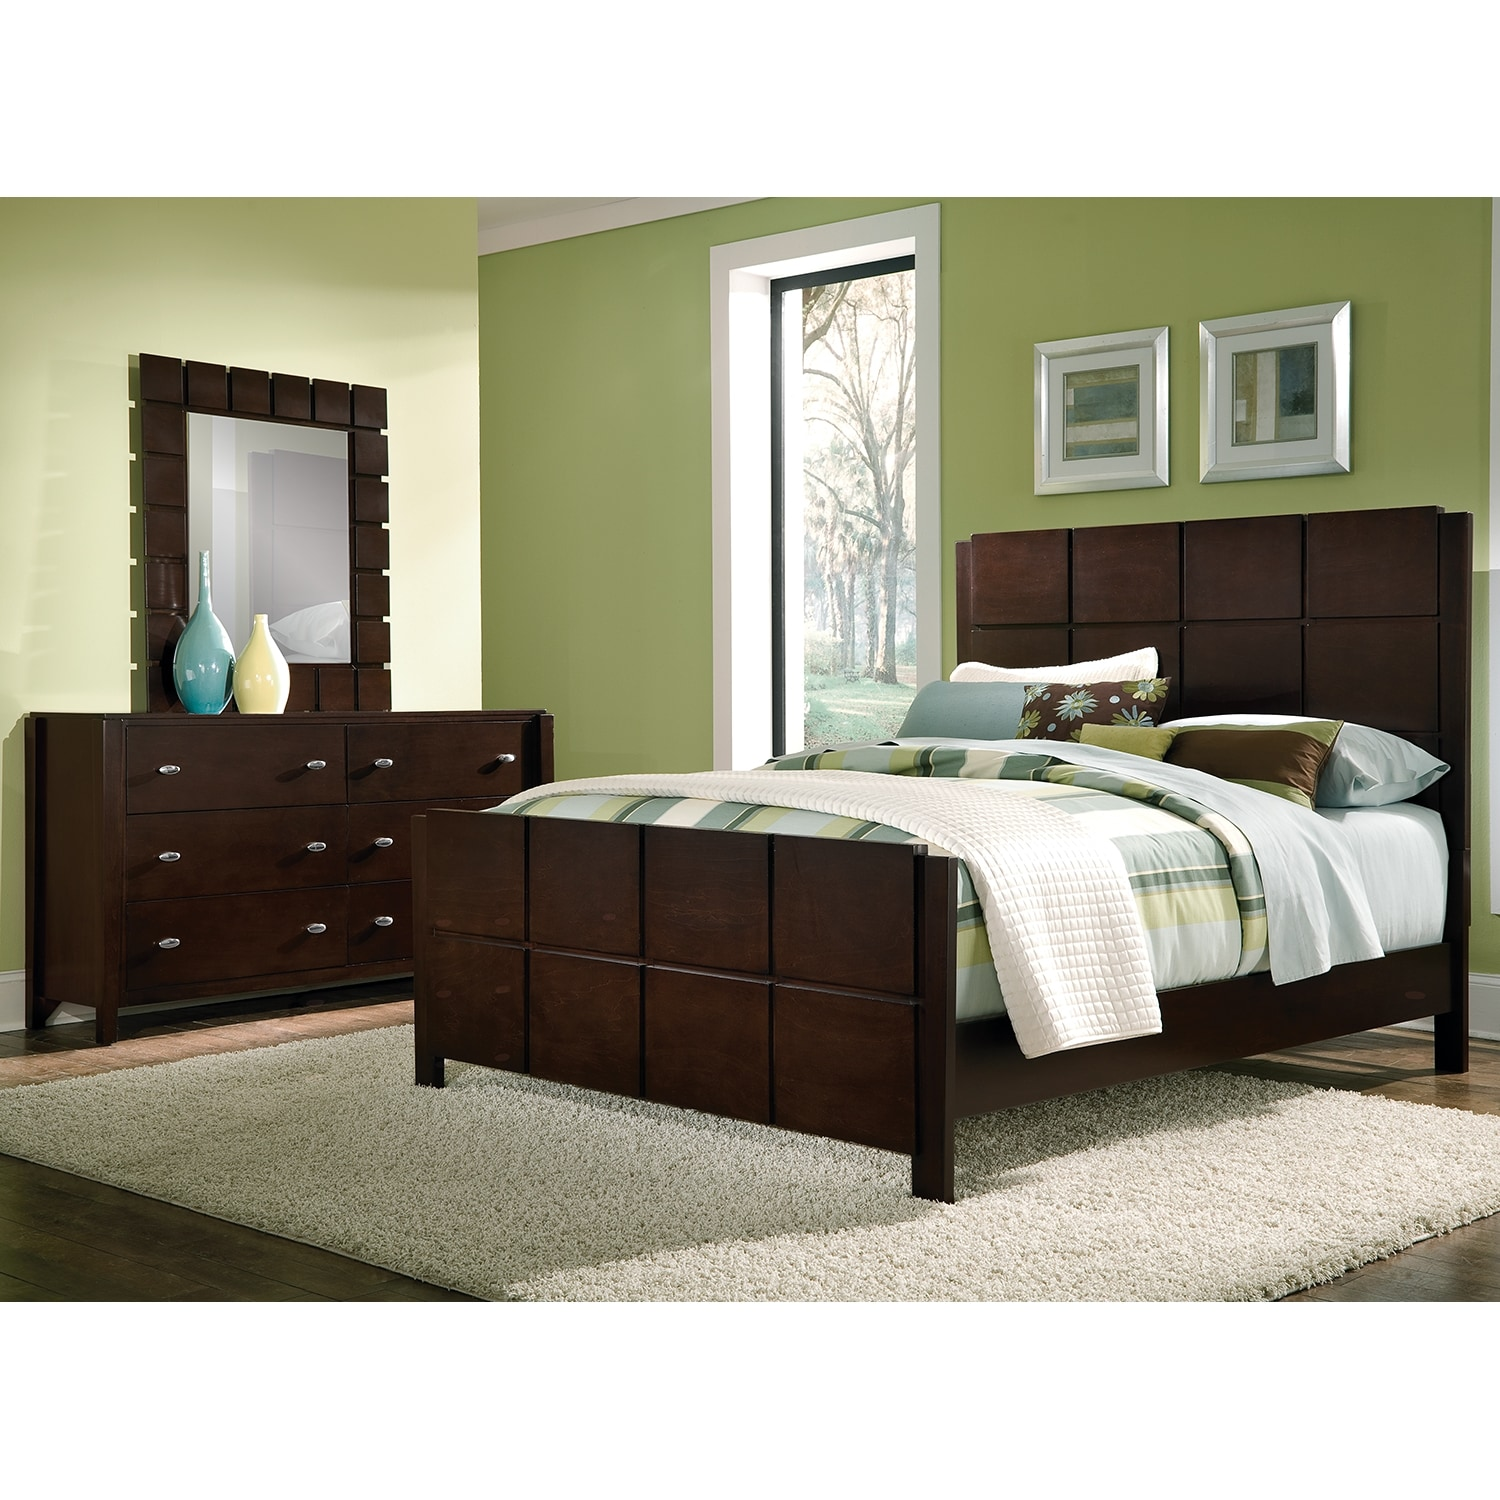 Mosaic 5 pc queen bedroom american signature furniture - Queen bedroom sets ...